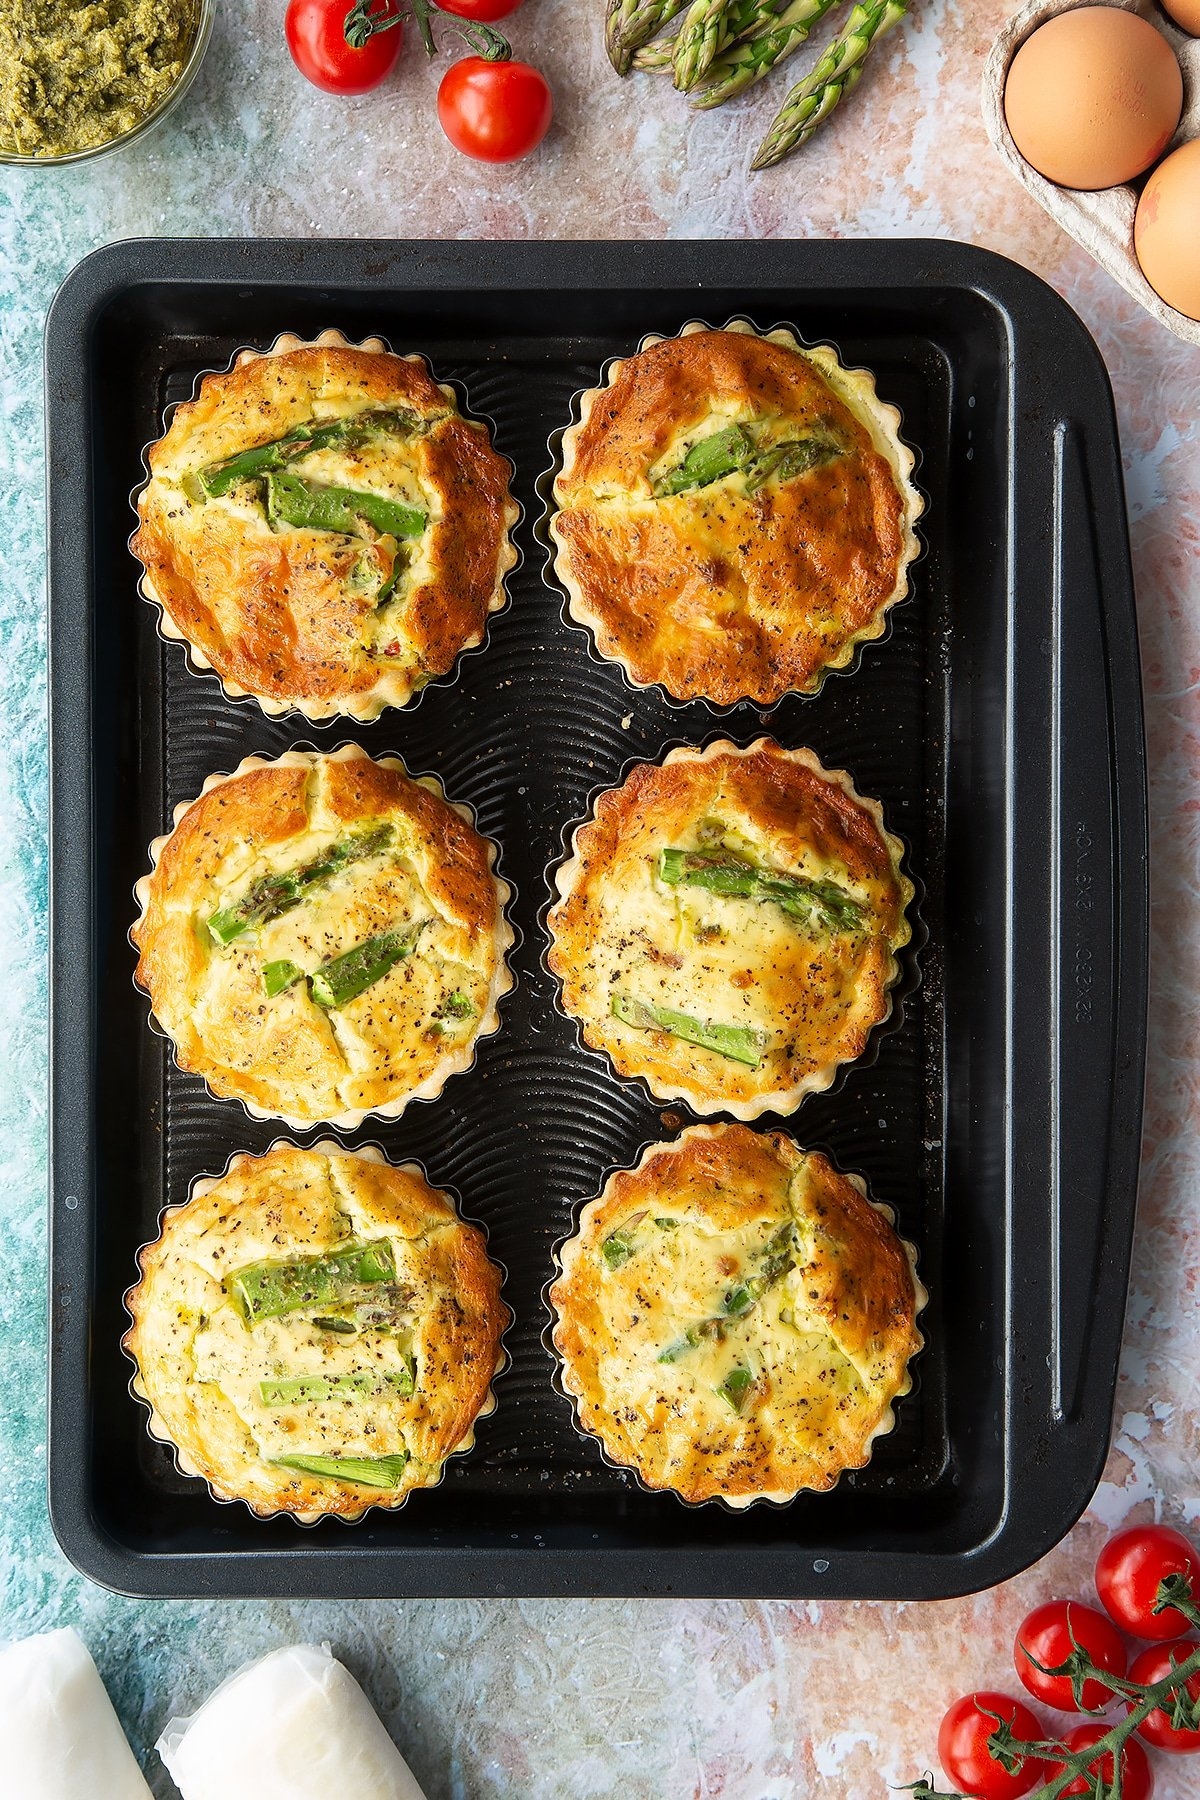 Six asparagus tartlets on a baking tray. Shown from above.